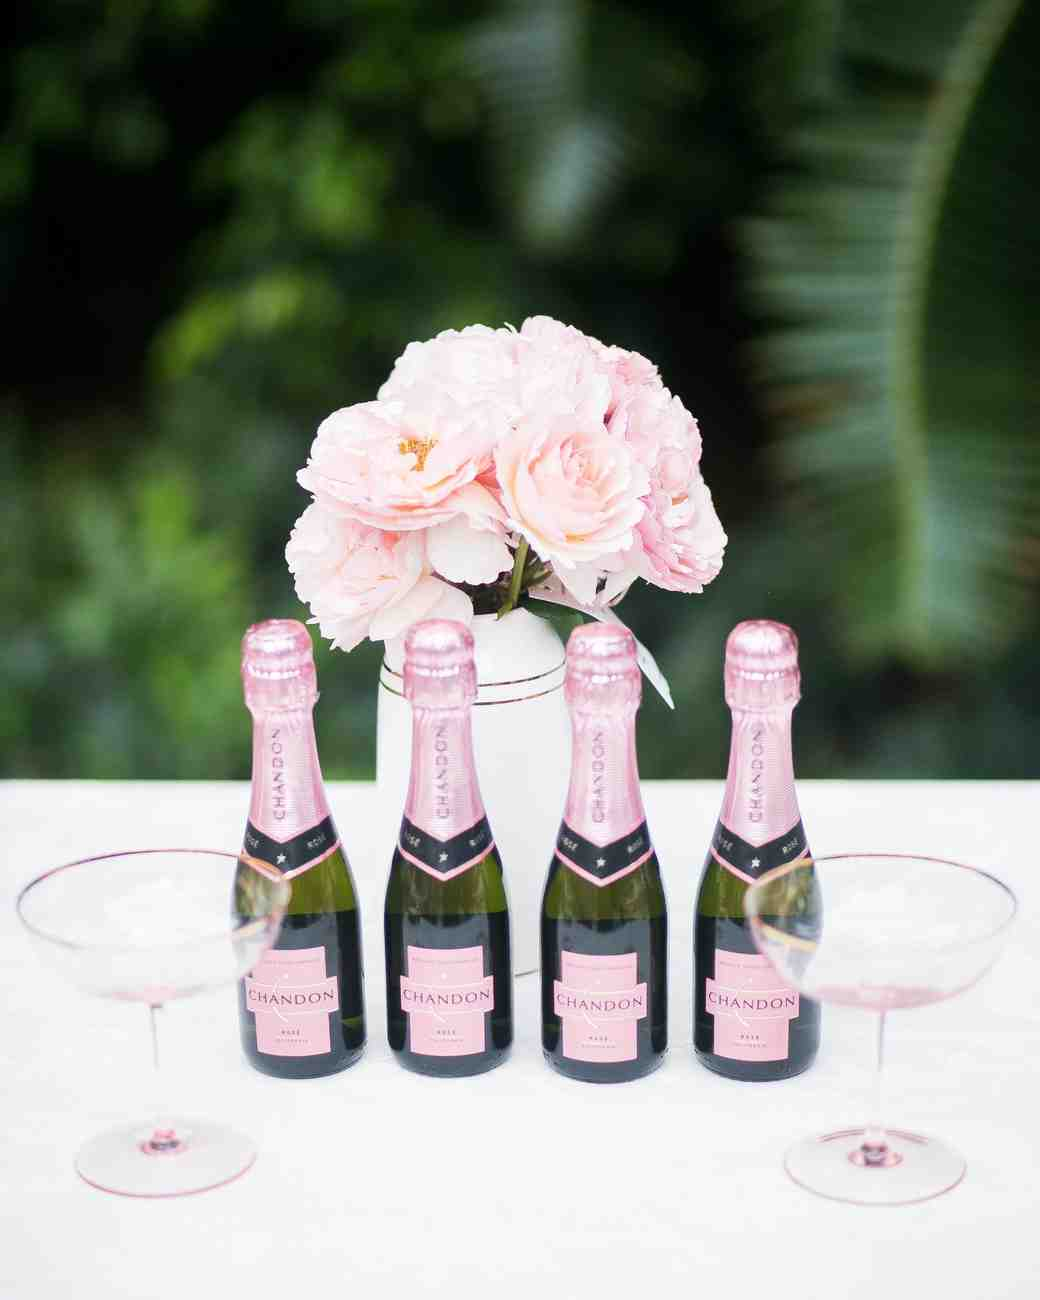 fashionable-hostess-bridal-shower-mini-rose-champagne-bottles-0716.jpg